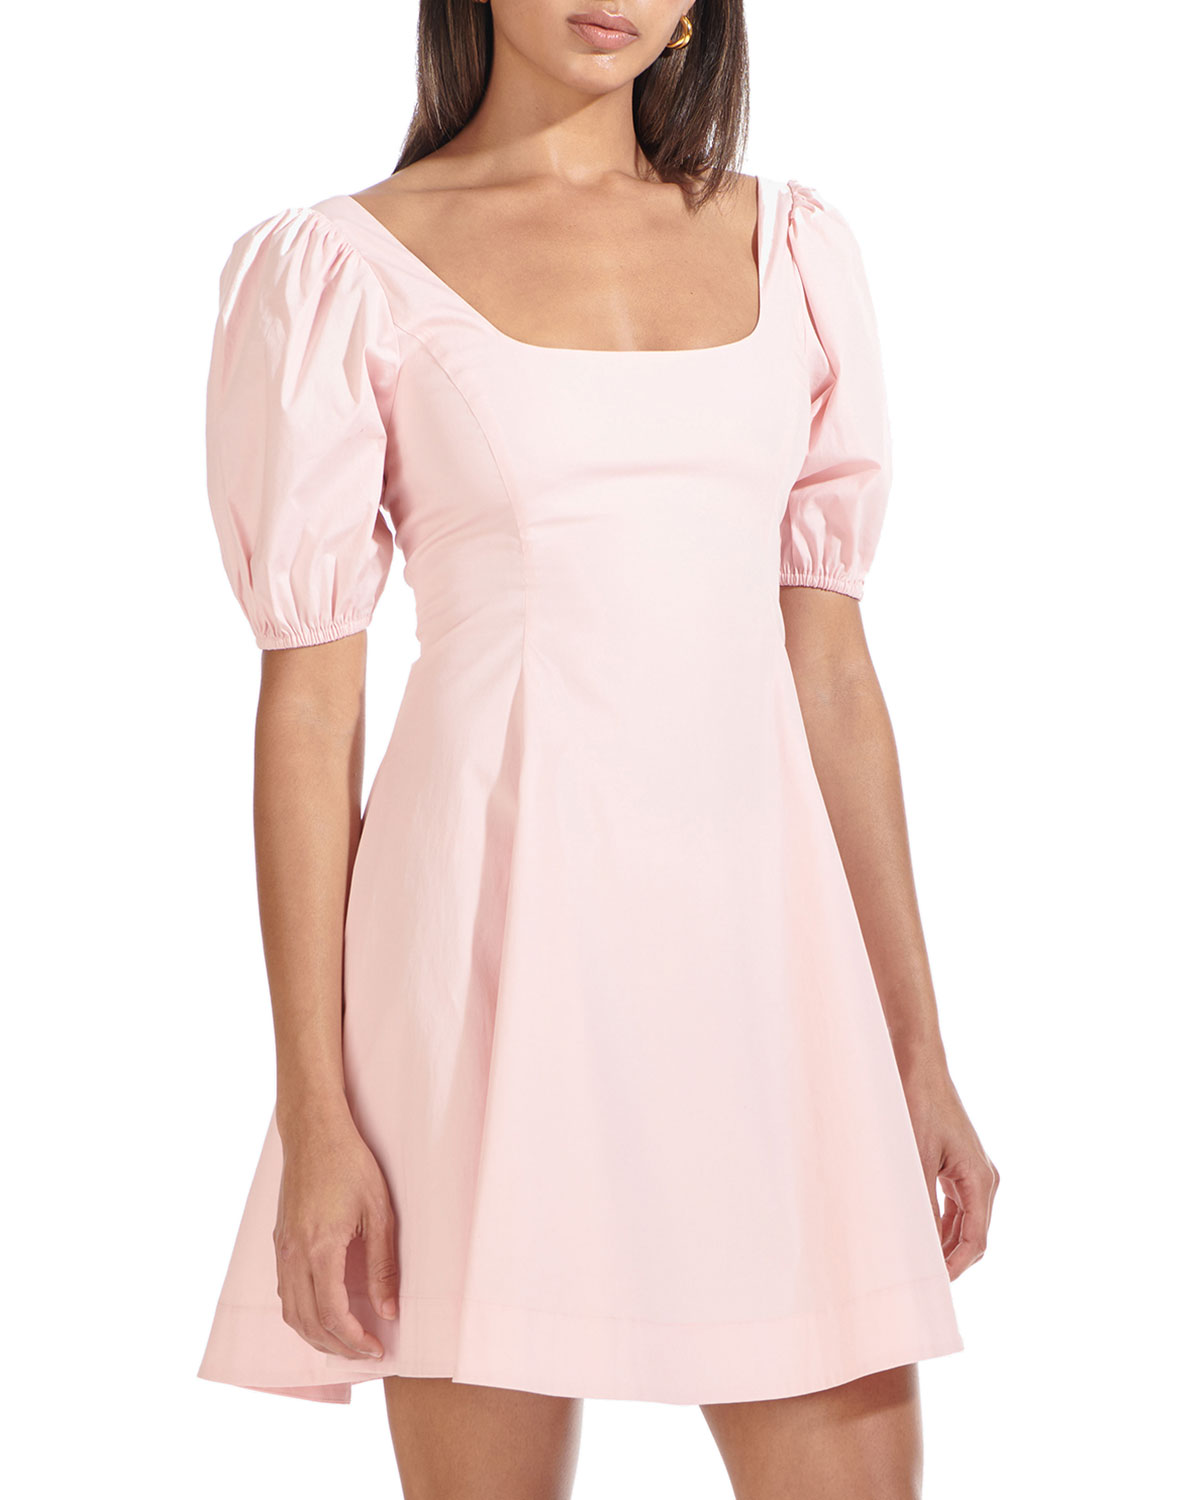 Staud Laelia Puff Sleeve Dress